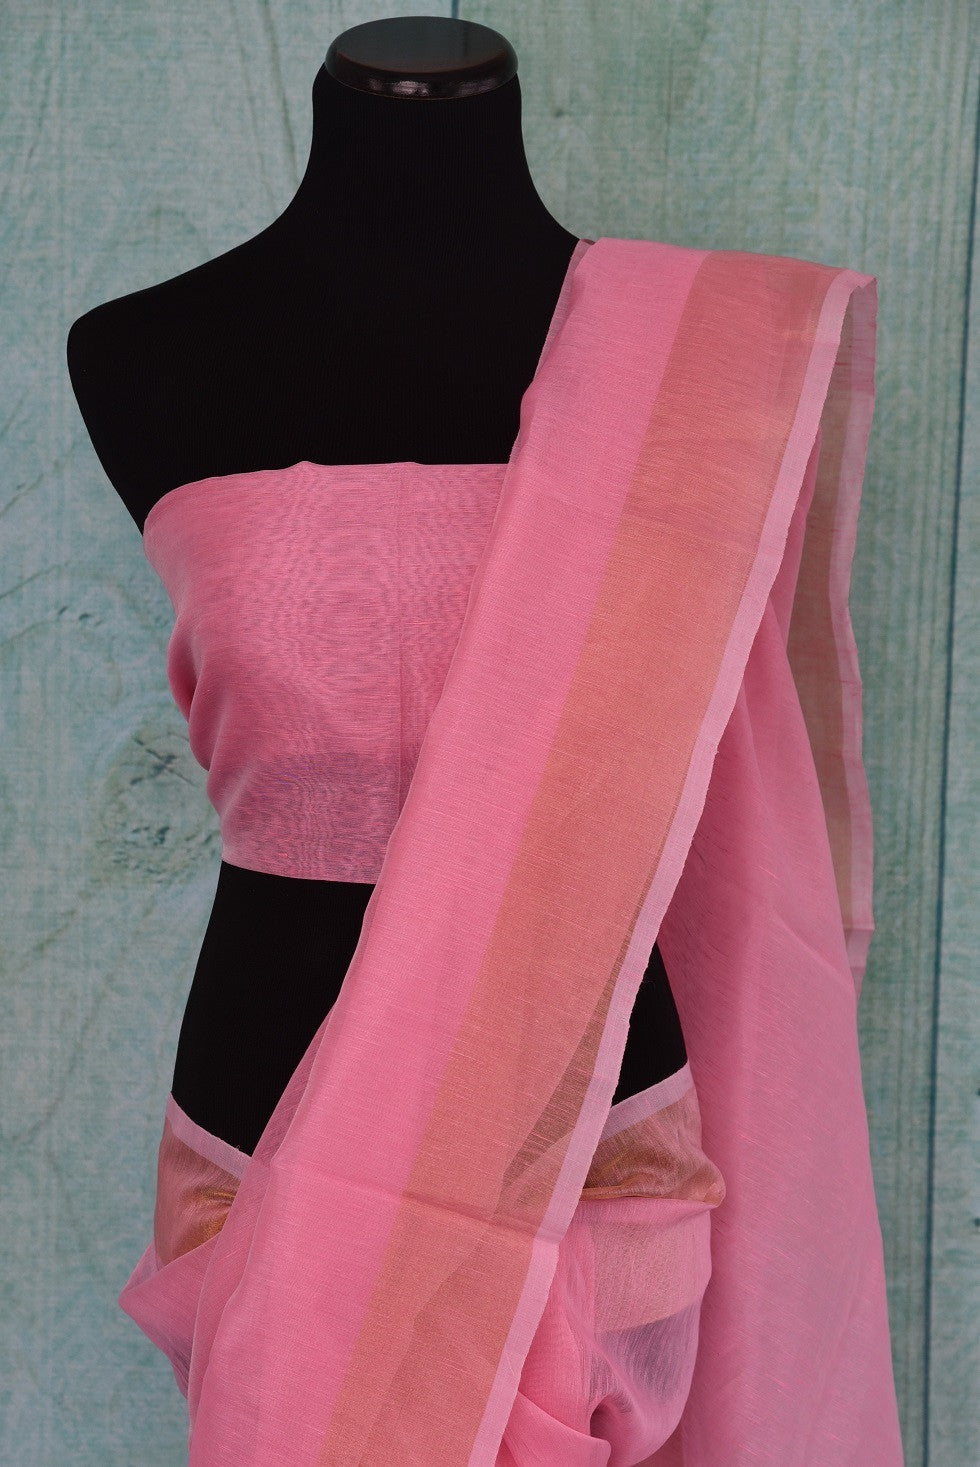 90B344 Buy this lovely organza Banarasi saree from our ethnic clothing store in USA, Pure Elegance. The pink sari with a golden border is a versatile Indian outfit and can be styled in many ways and is a lovely pick for festive occasions and pujas.